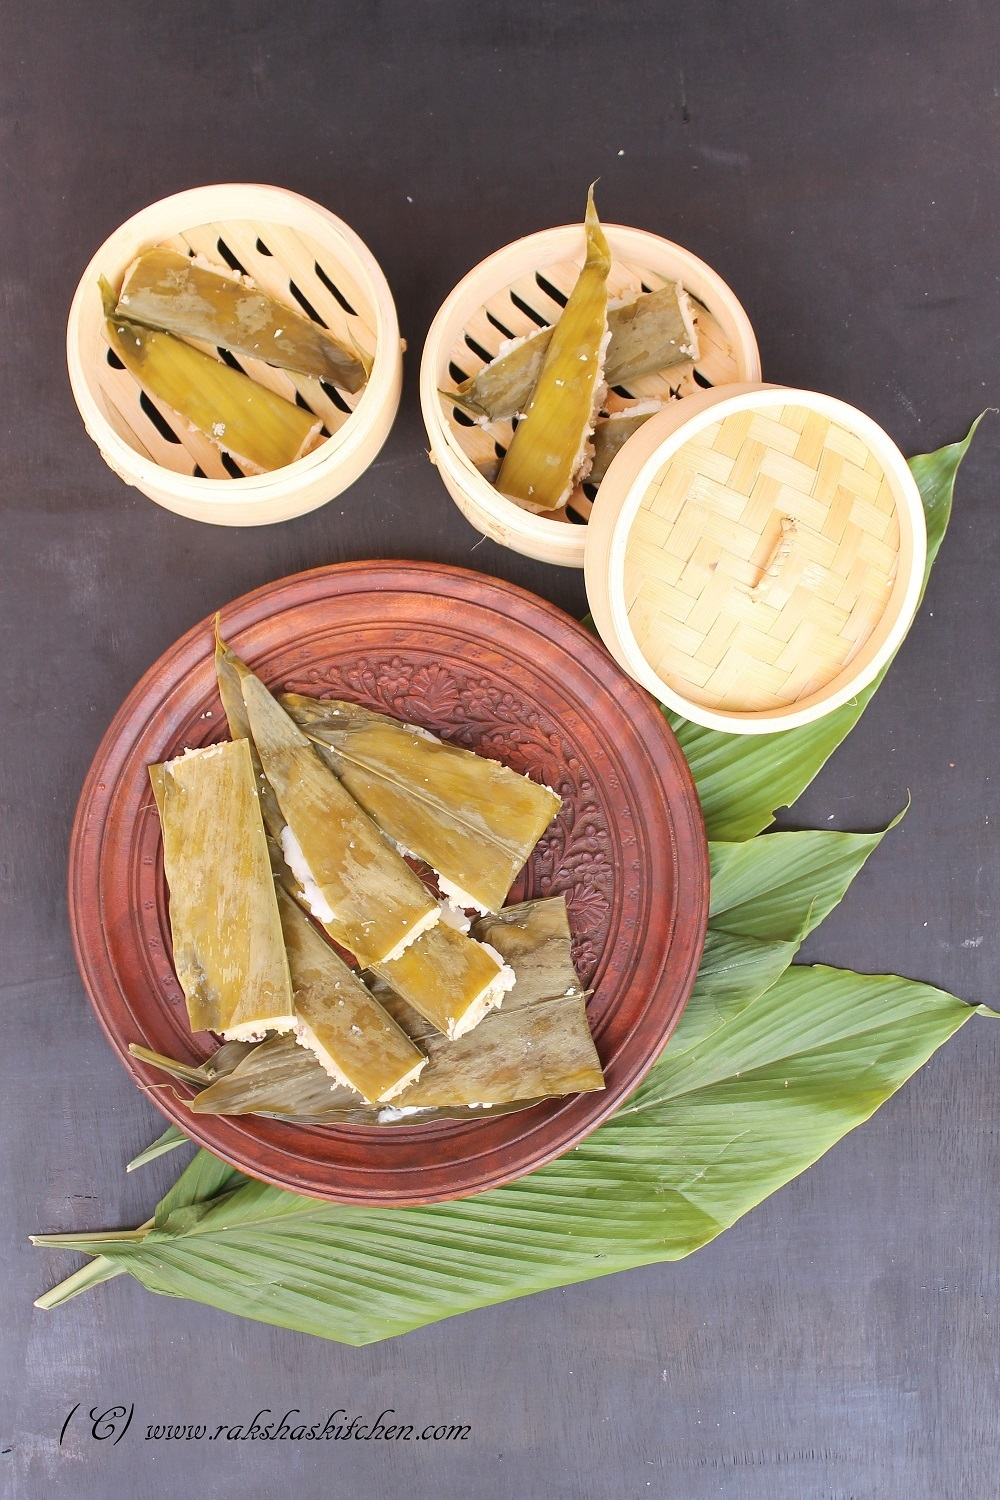 Patoli Recipe | Pattoleo Recipe | Coconut, Jaggery And Rice Dumplings Wrapped And Steamed In Turmeric Leaves